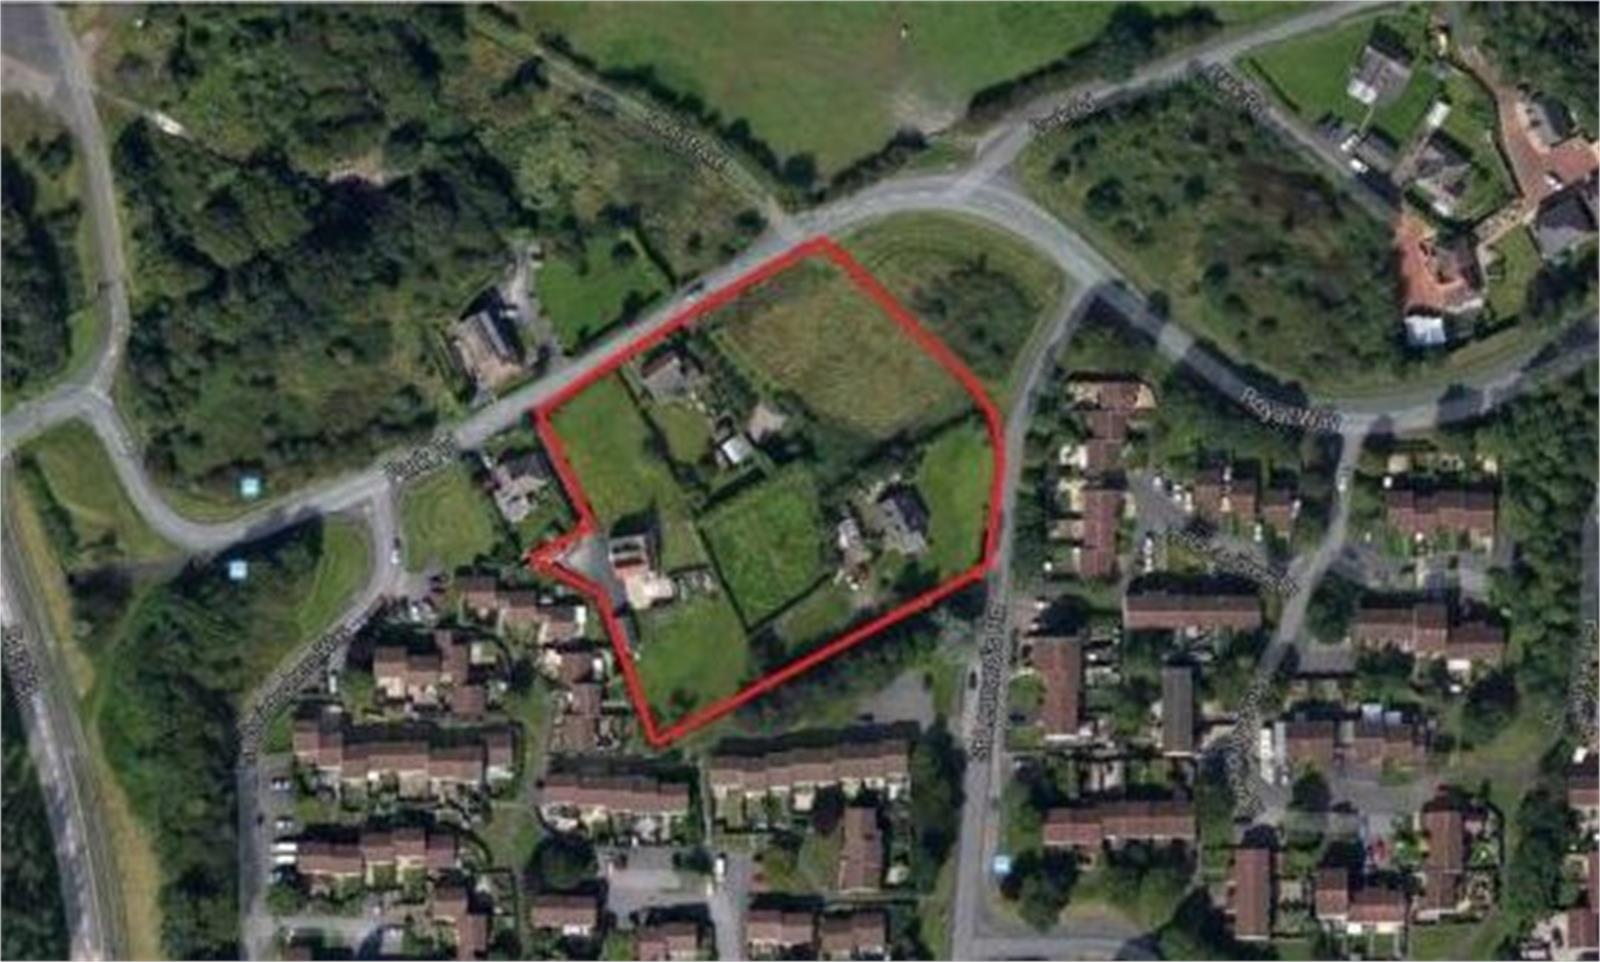 Building Plot on, Park Road, Malinslee, Telford, Shropshire, TF4